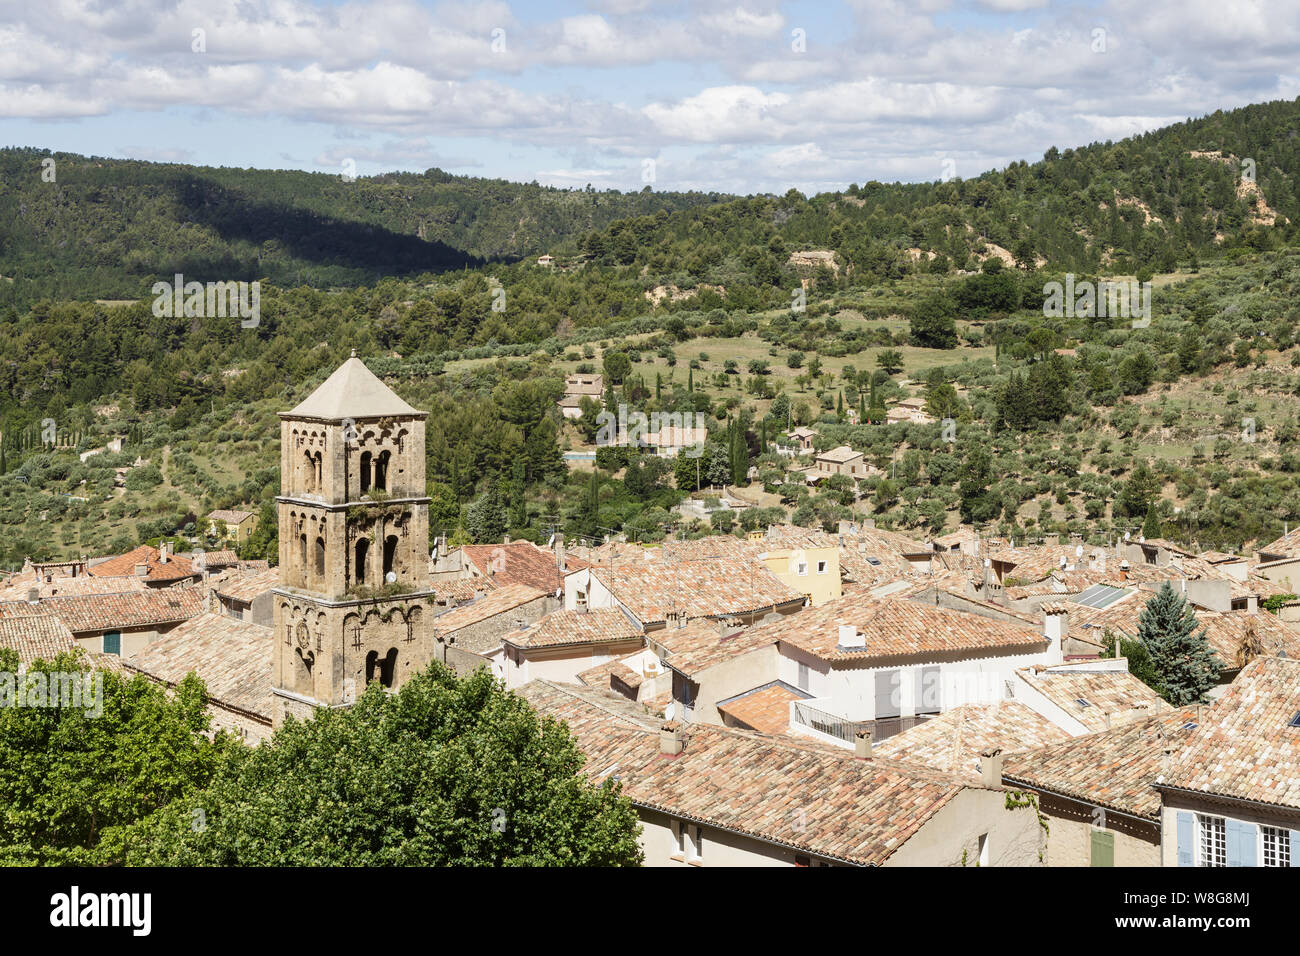 The village of Moustiers Sainte Marie in Provence, France. Stock Photo